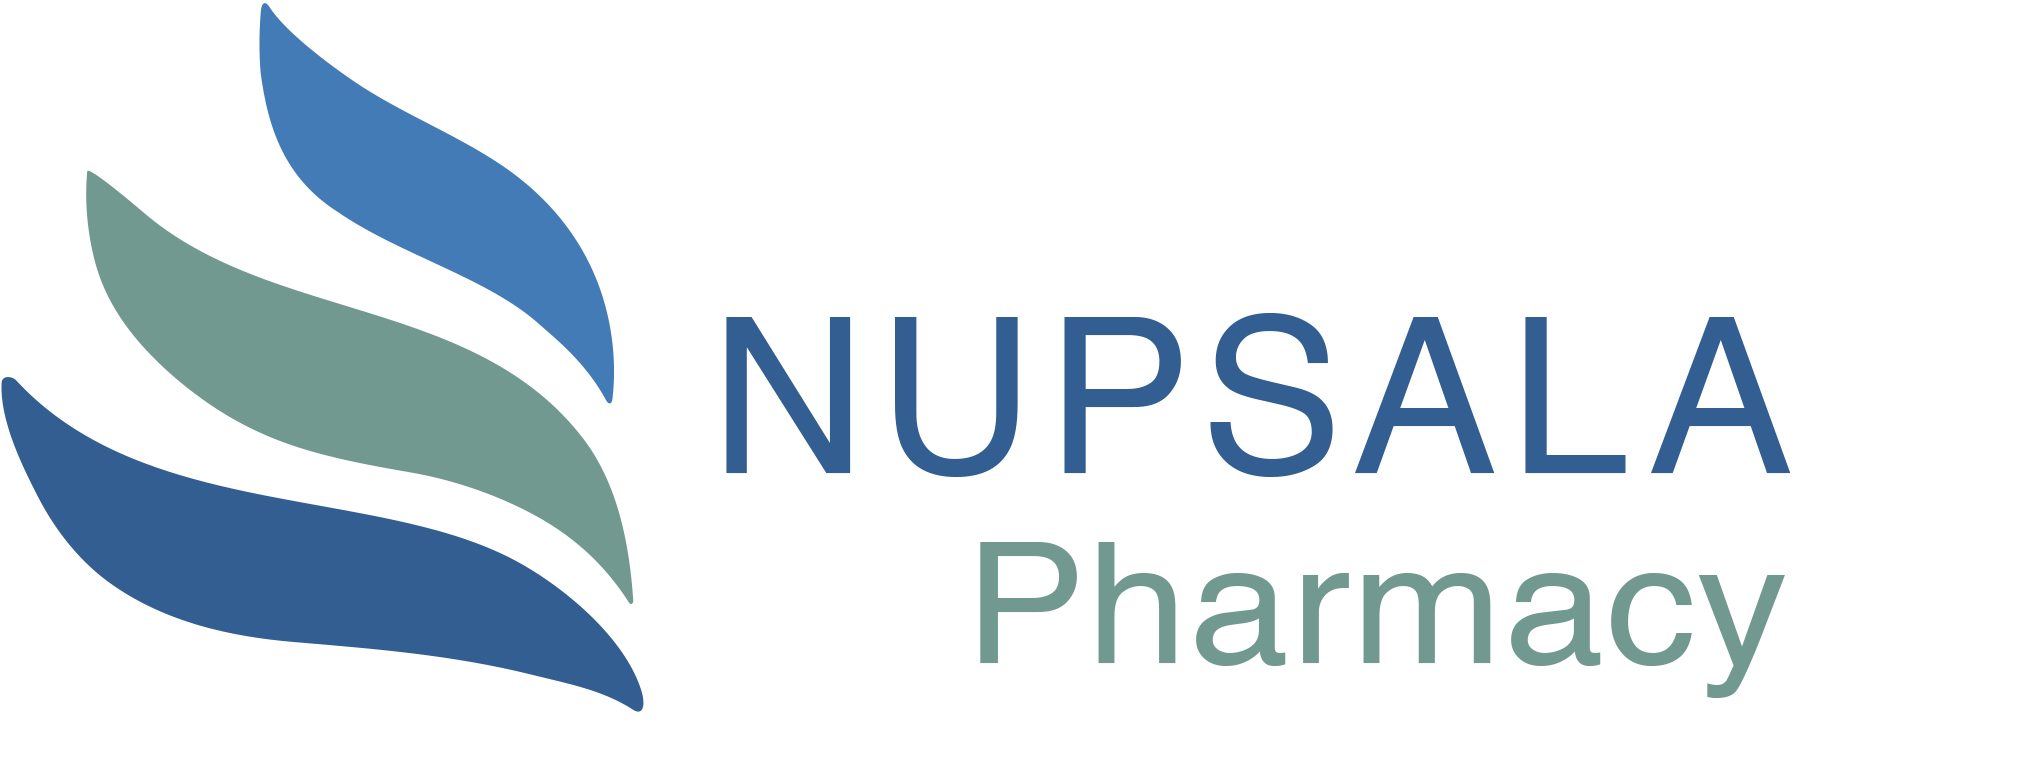 Nupsala Pharmacy